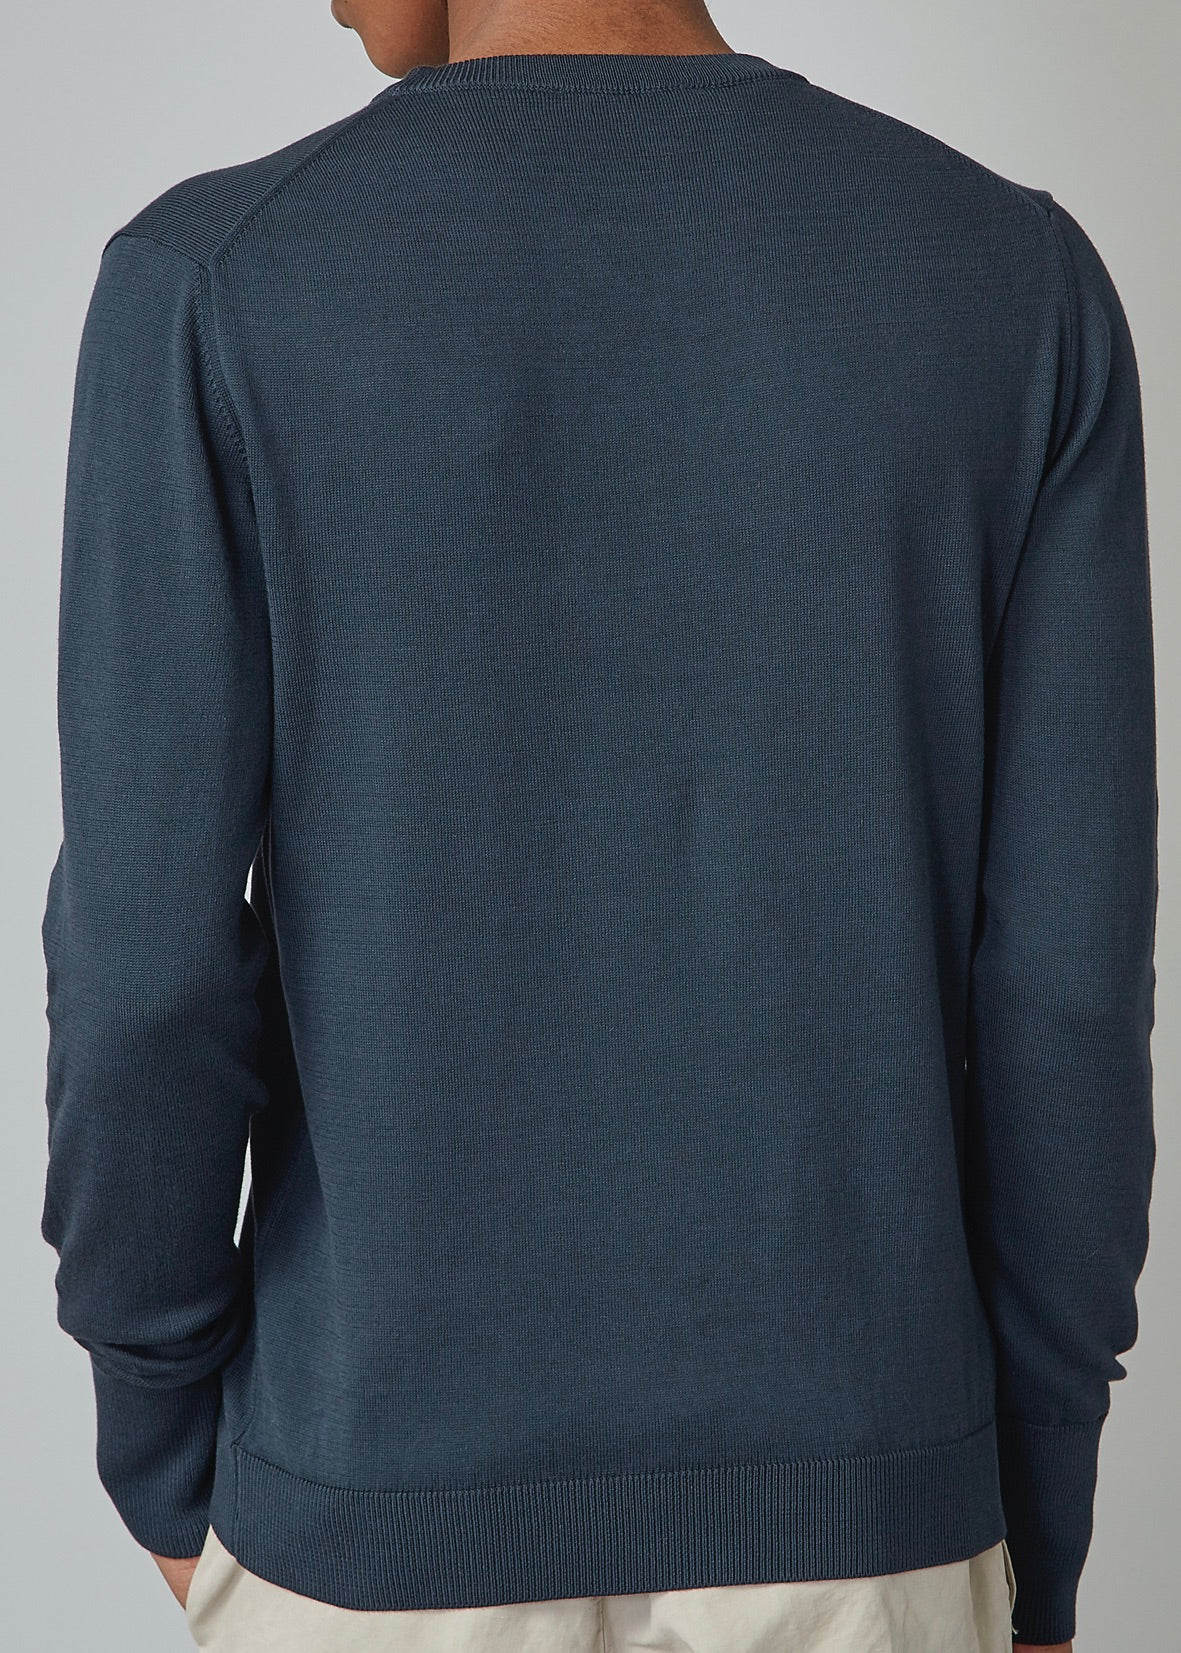 Neils Cotton Sweater Dark Navy